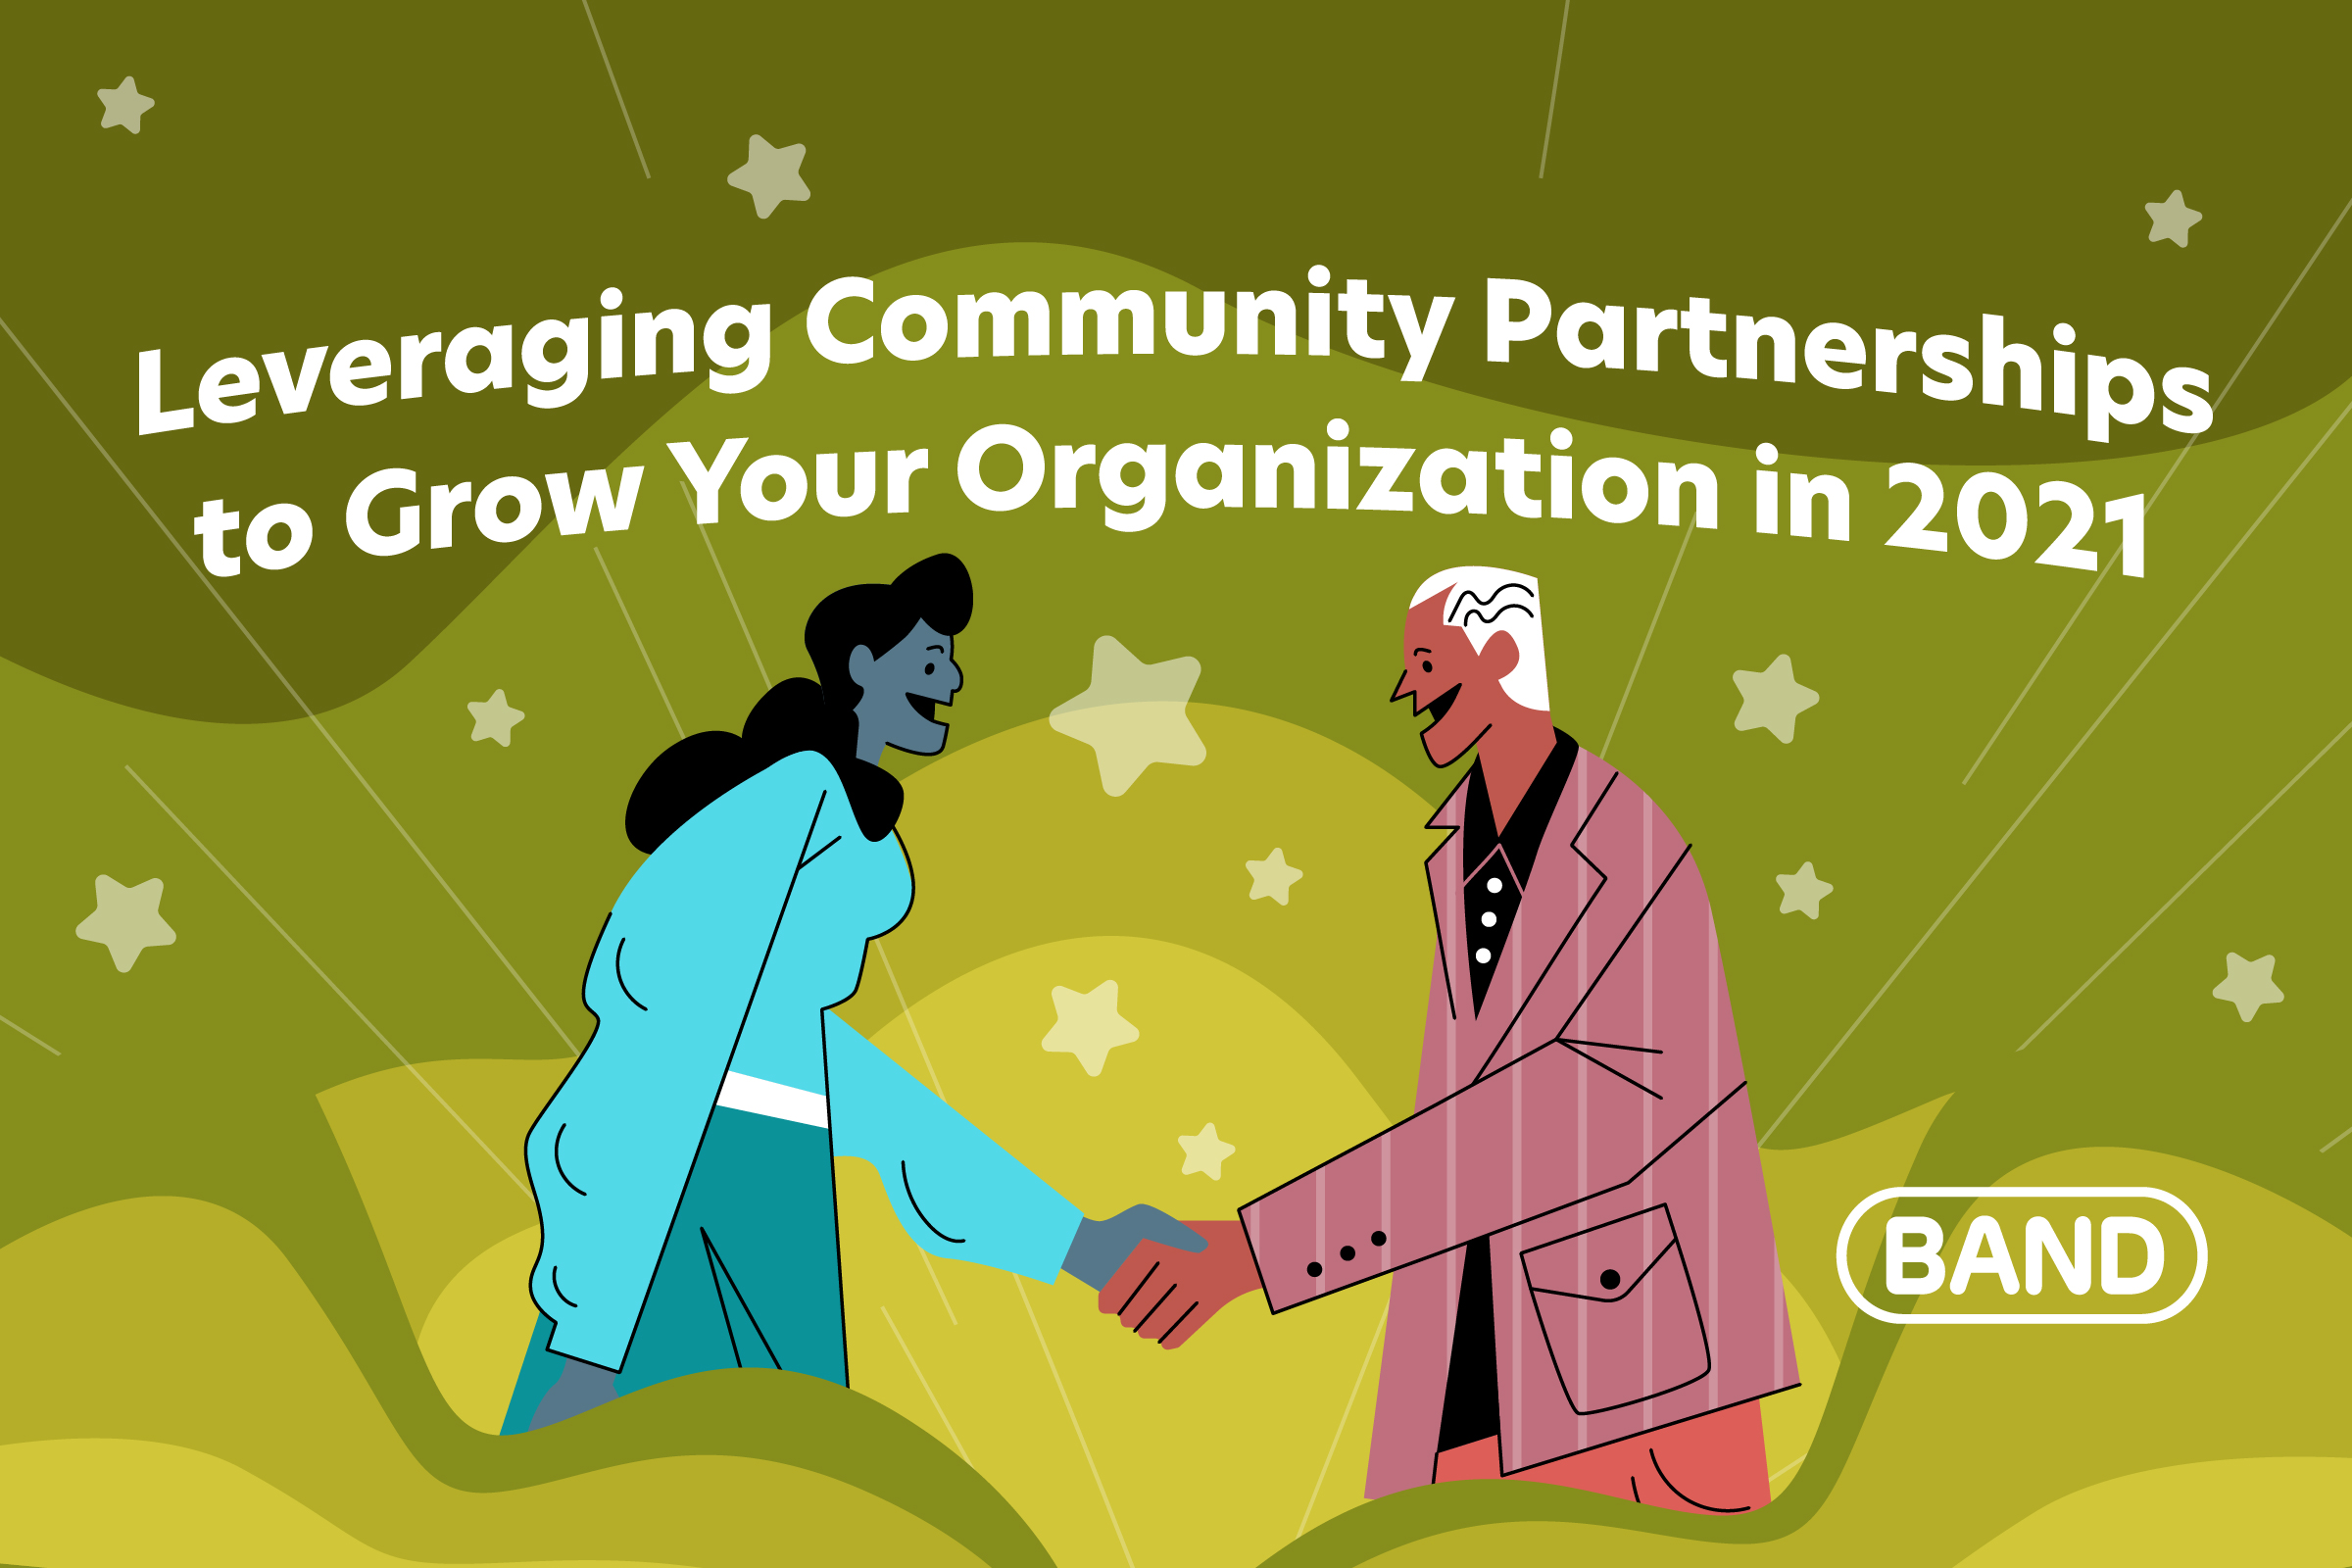 Leveraging Community Partnerships to Grow Your Organization